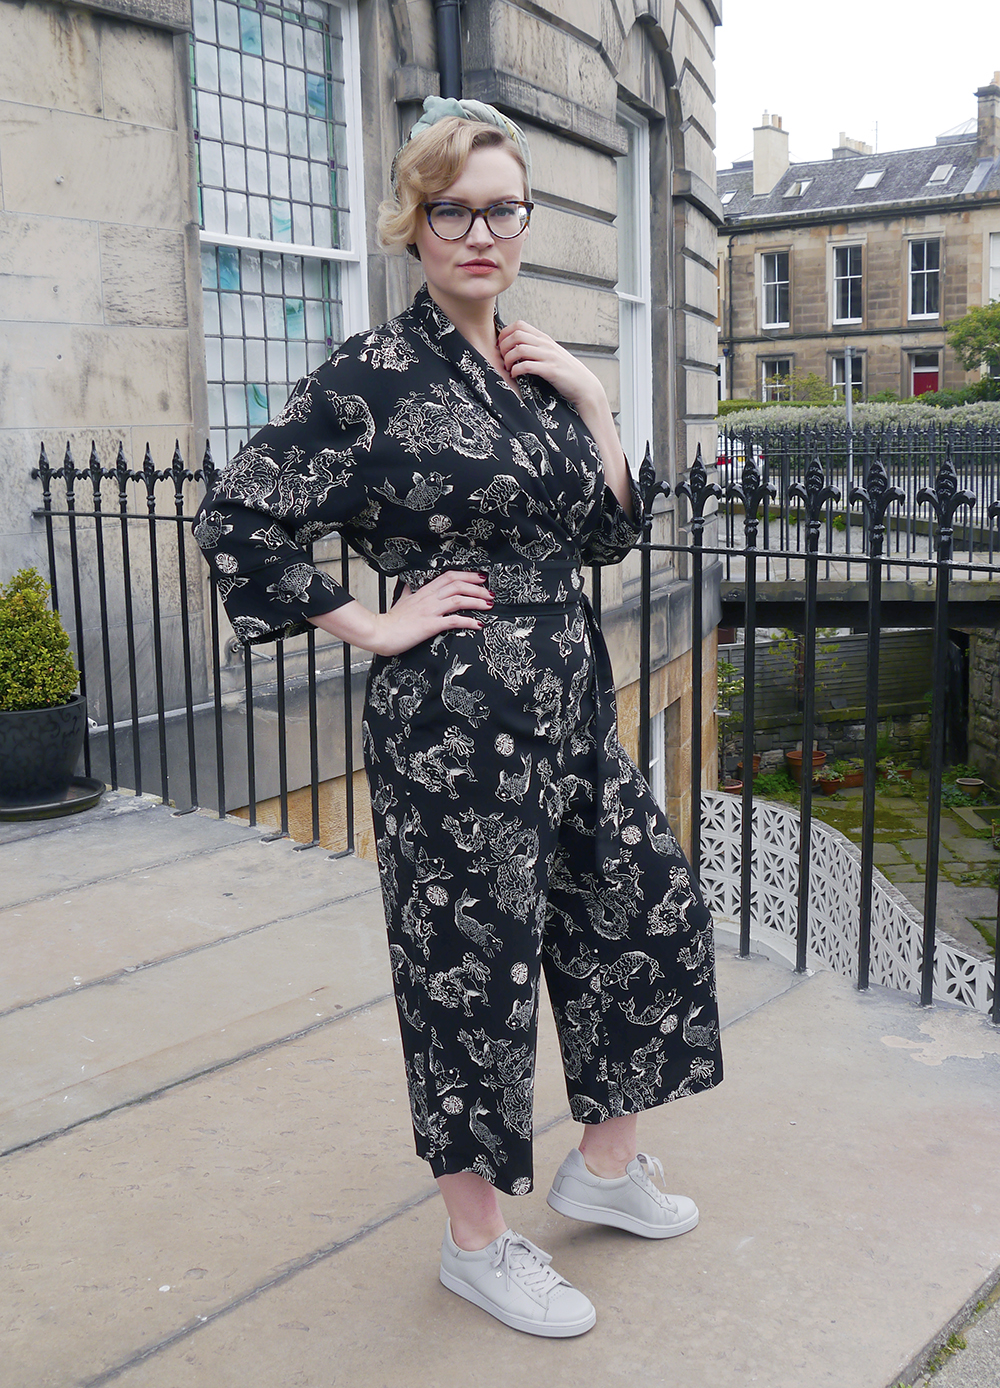 Top Scottish fashion blogger Kimberley from Wardrobe Conversations wears a black print Biba jumpsuit and headwrap for an easy Sunday cocktail look